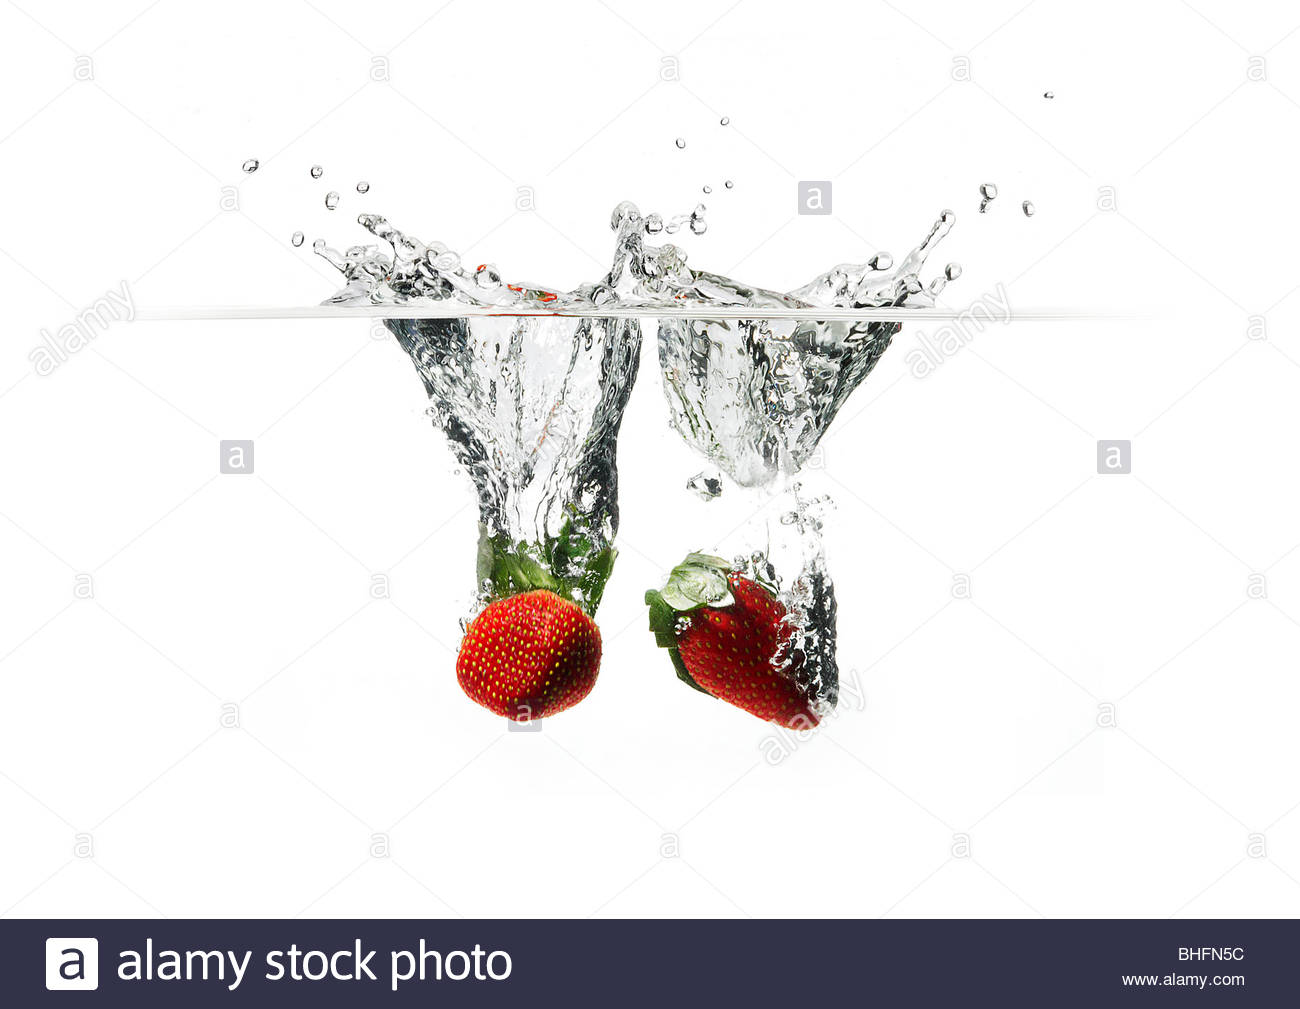 two strawberries dropped in crystal clear water creating a splash. - Stock Image